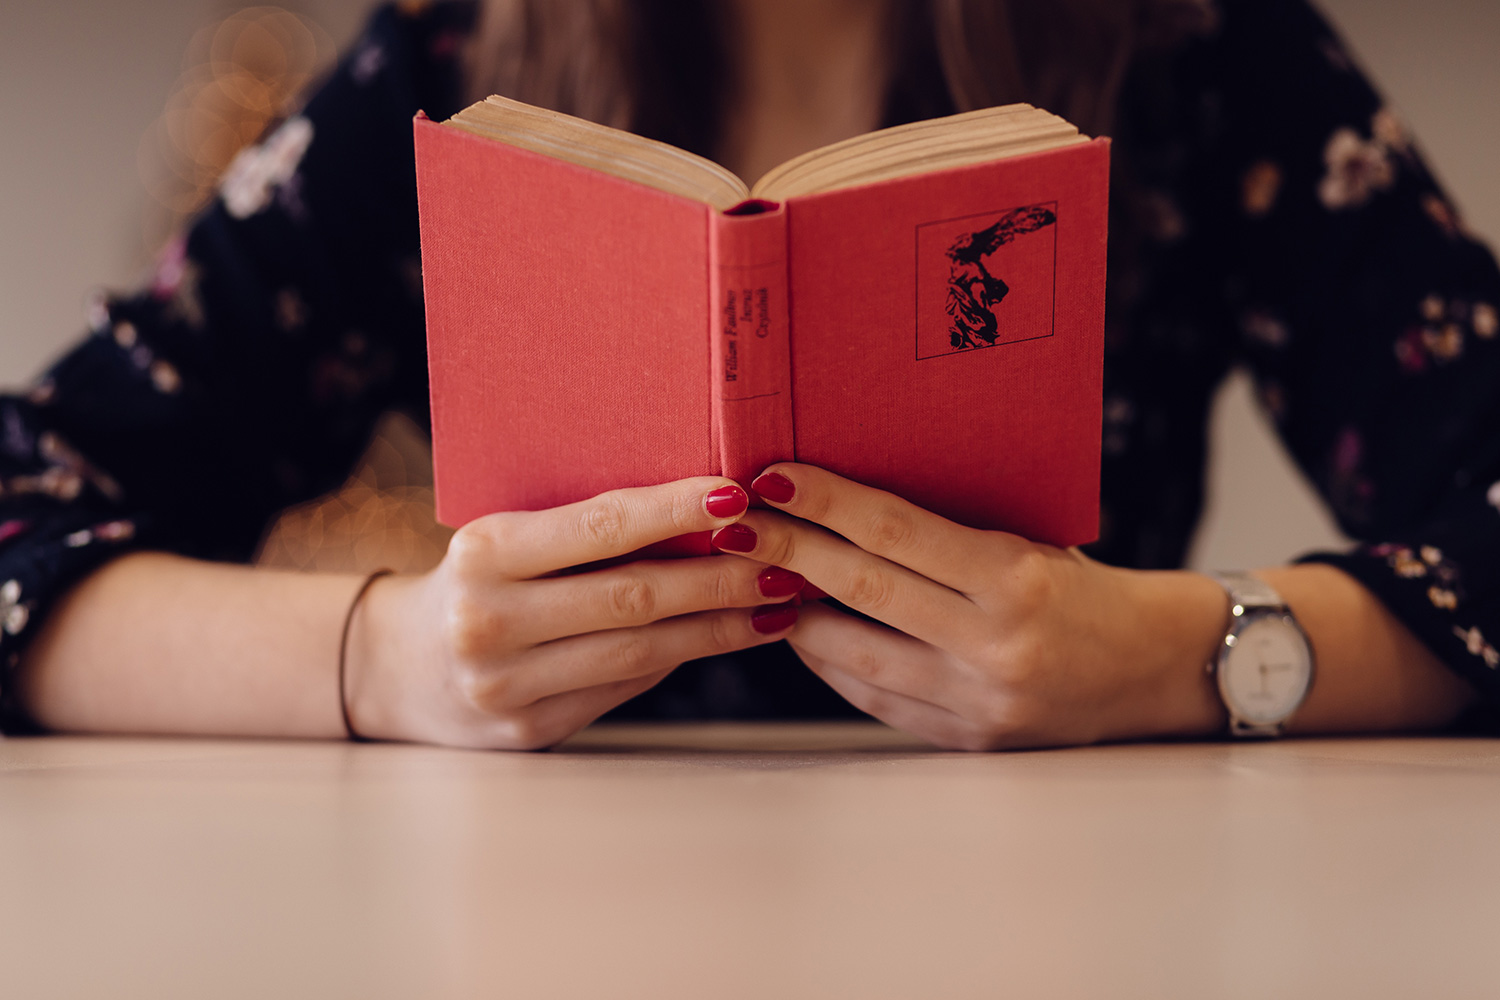 Close up of a student reading a red hard-covered book.